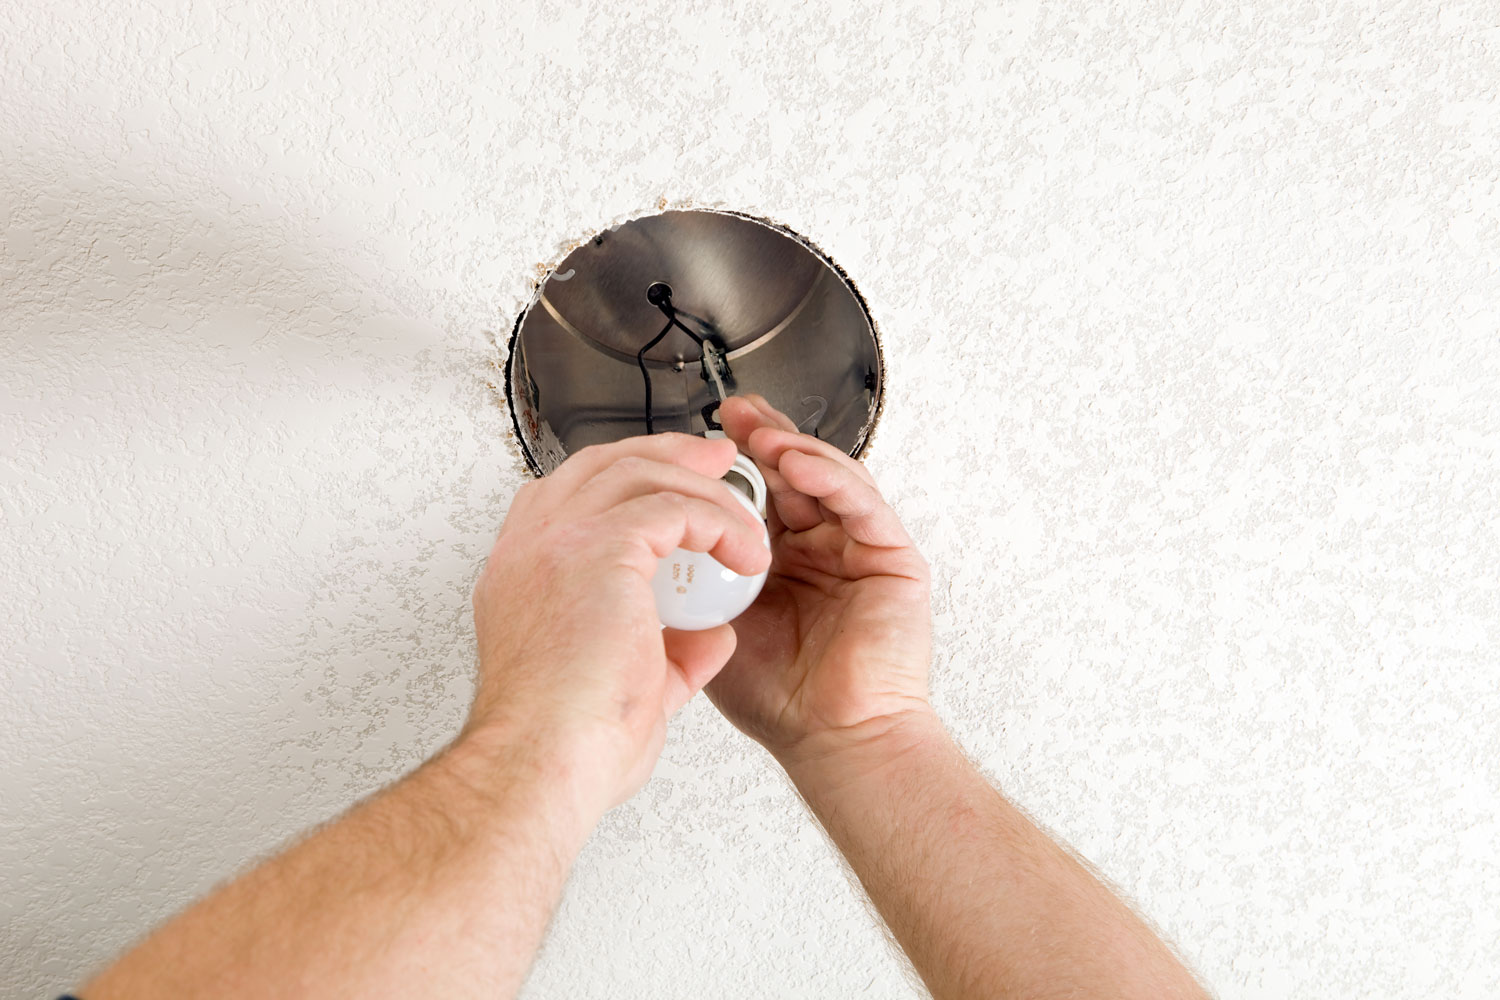 A man installing a 100W light for the recessed lighting, How To Remove Old Recessed Lighting Cans